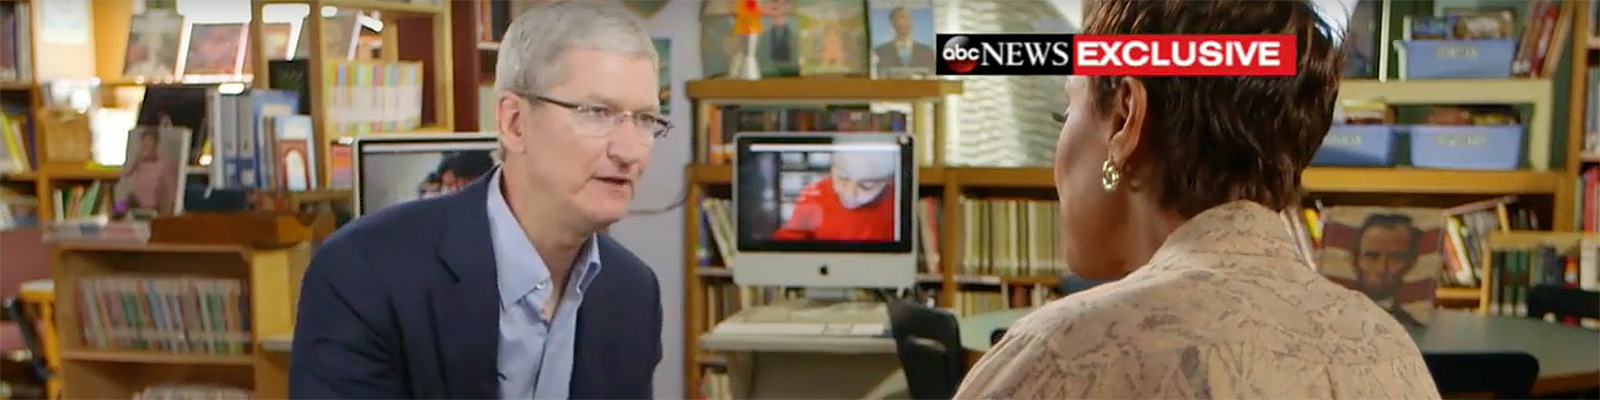 Tim Cook Interview | iPhone AirPods, Classroom Tech [EXCLUSIVE](ABC News)